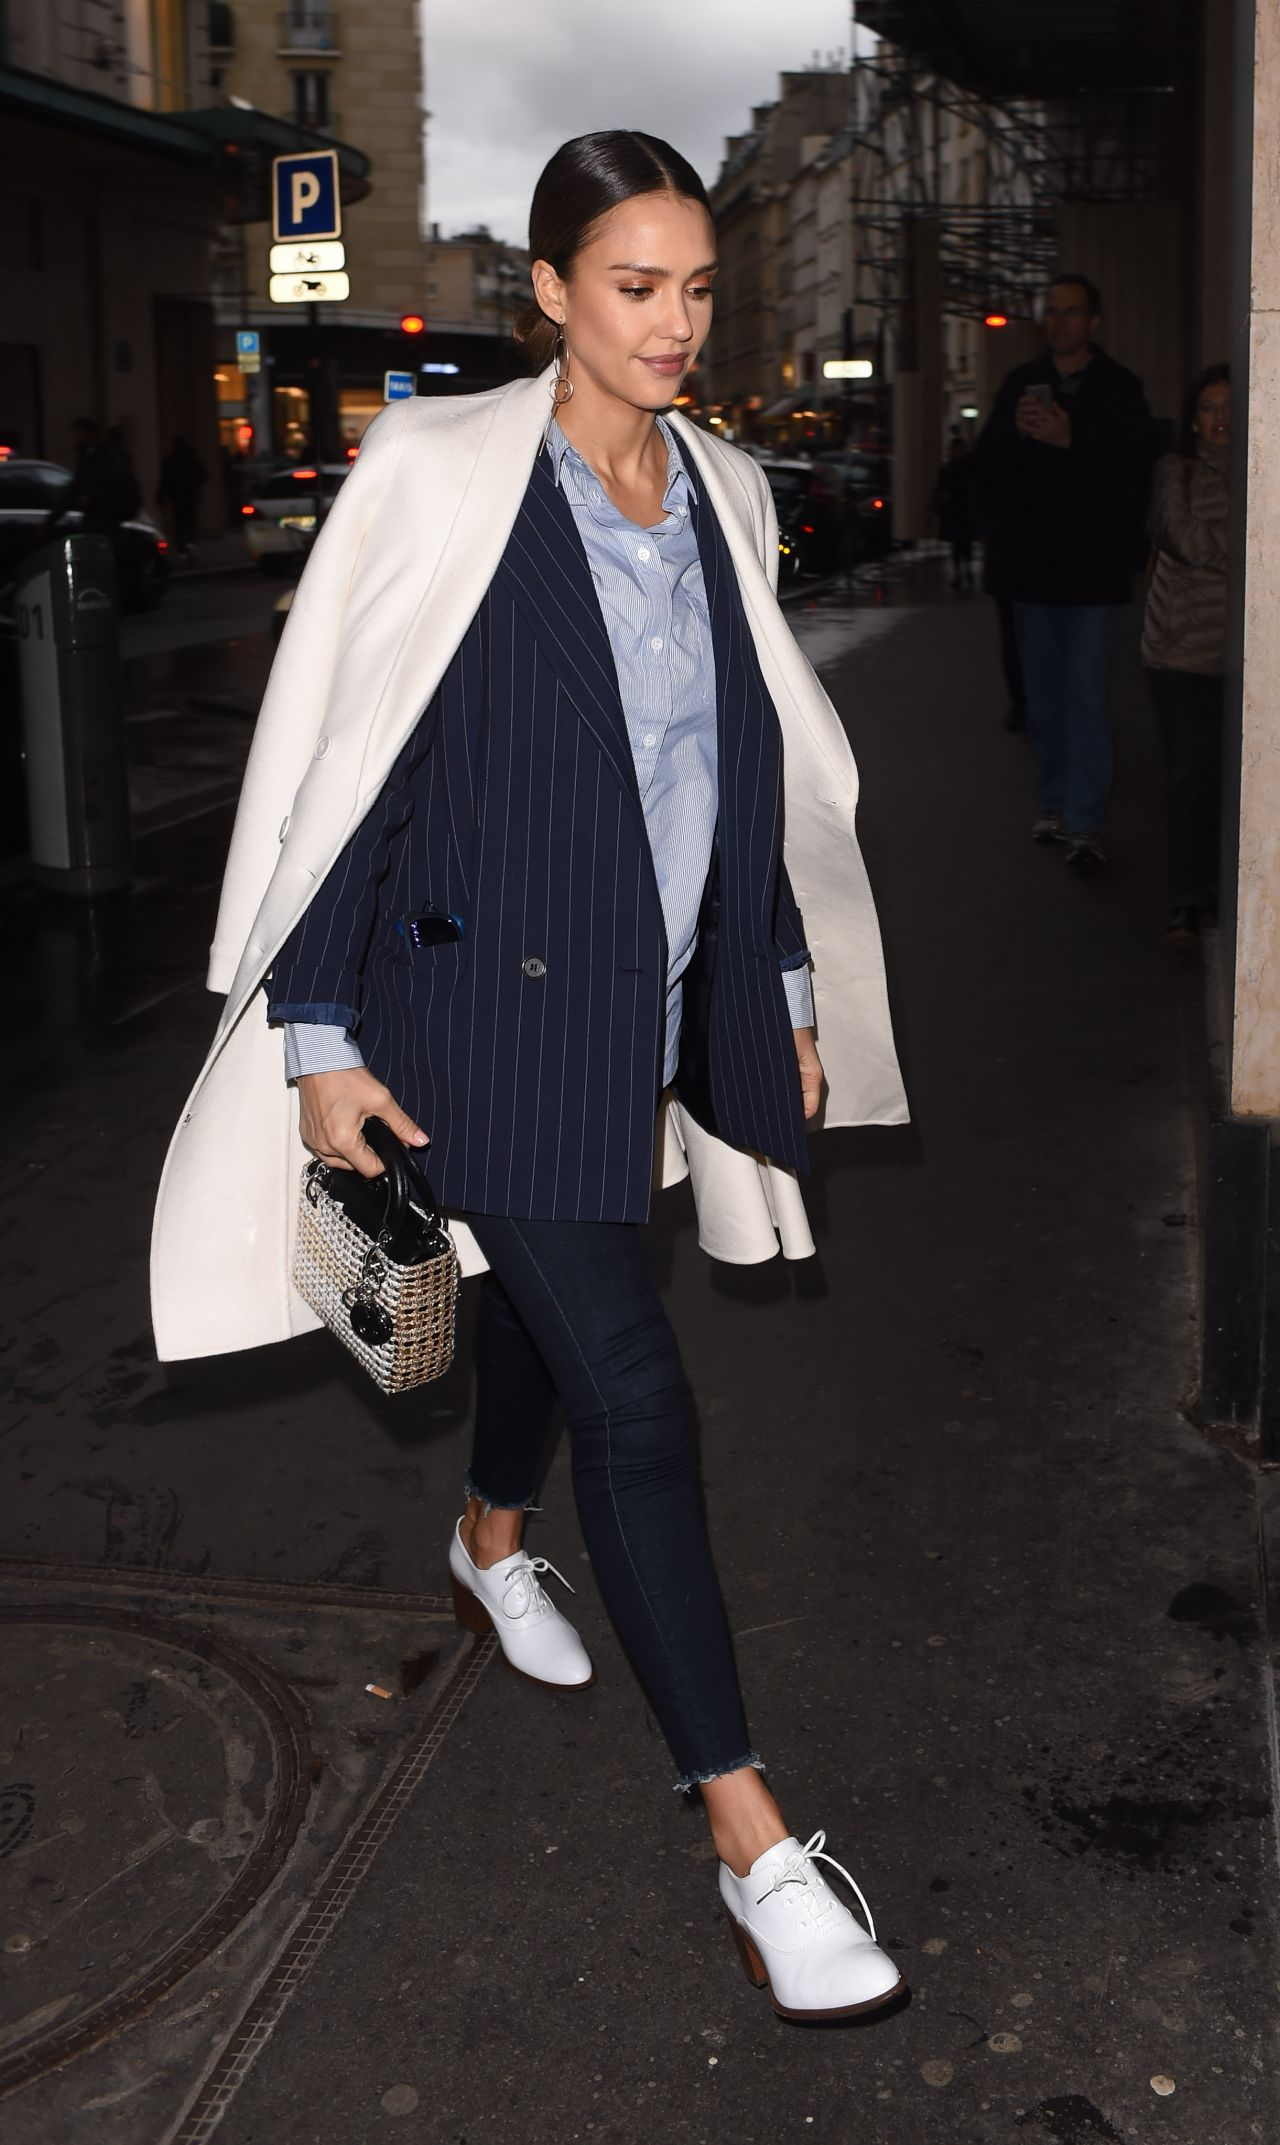 Jessica Alba Street Fashion Out In Paris France 3 4 2016